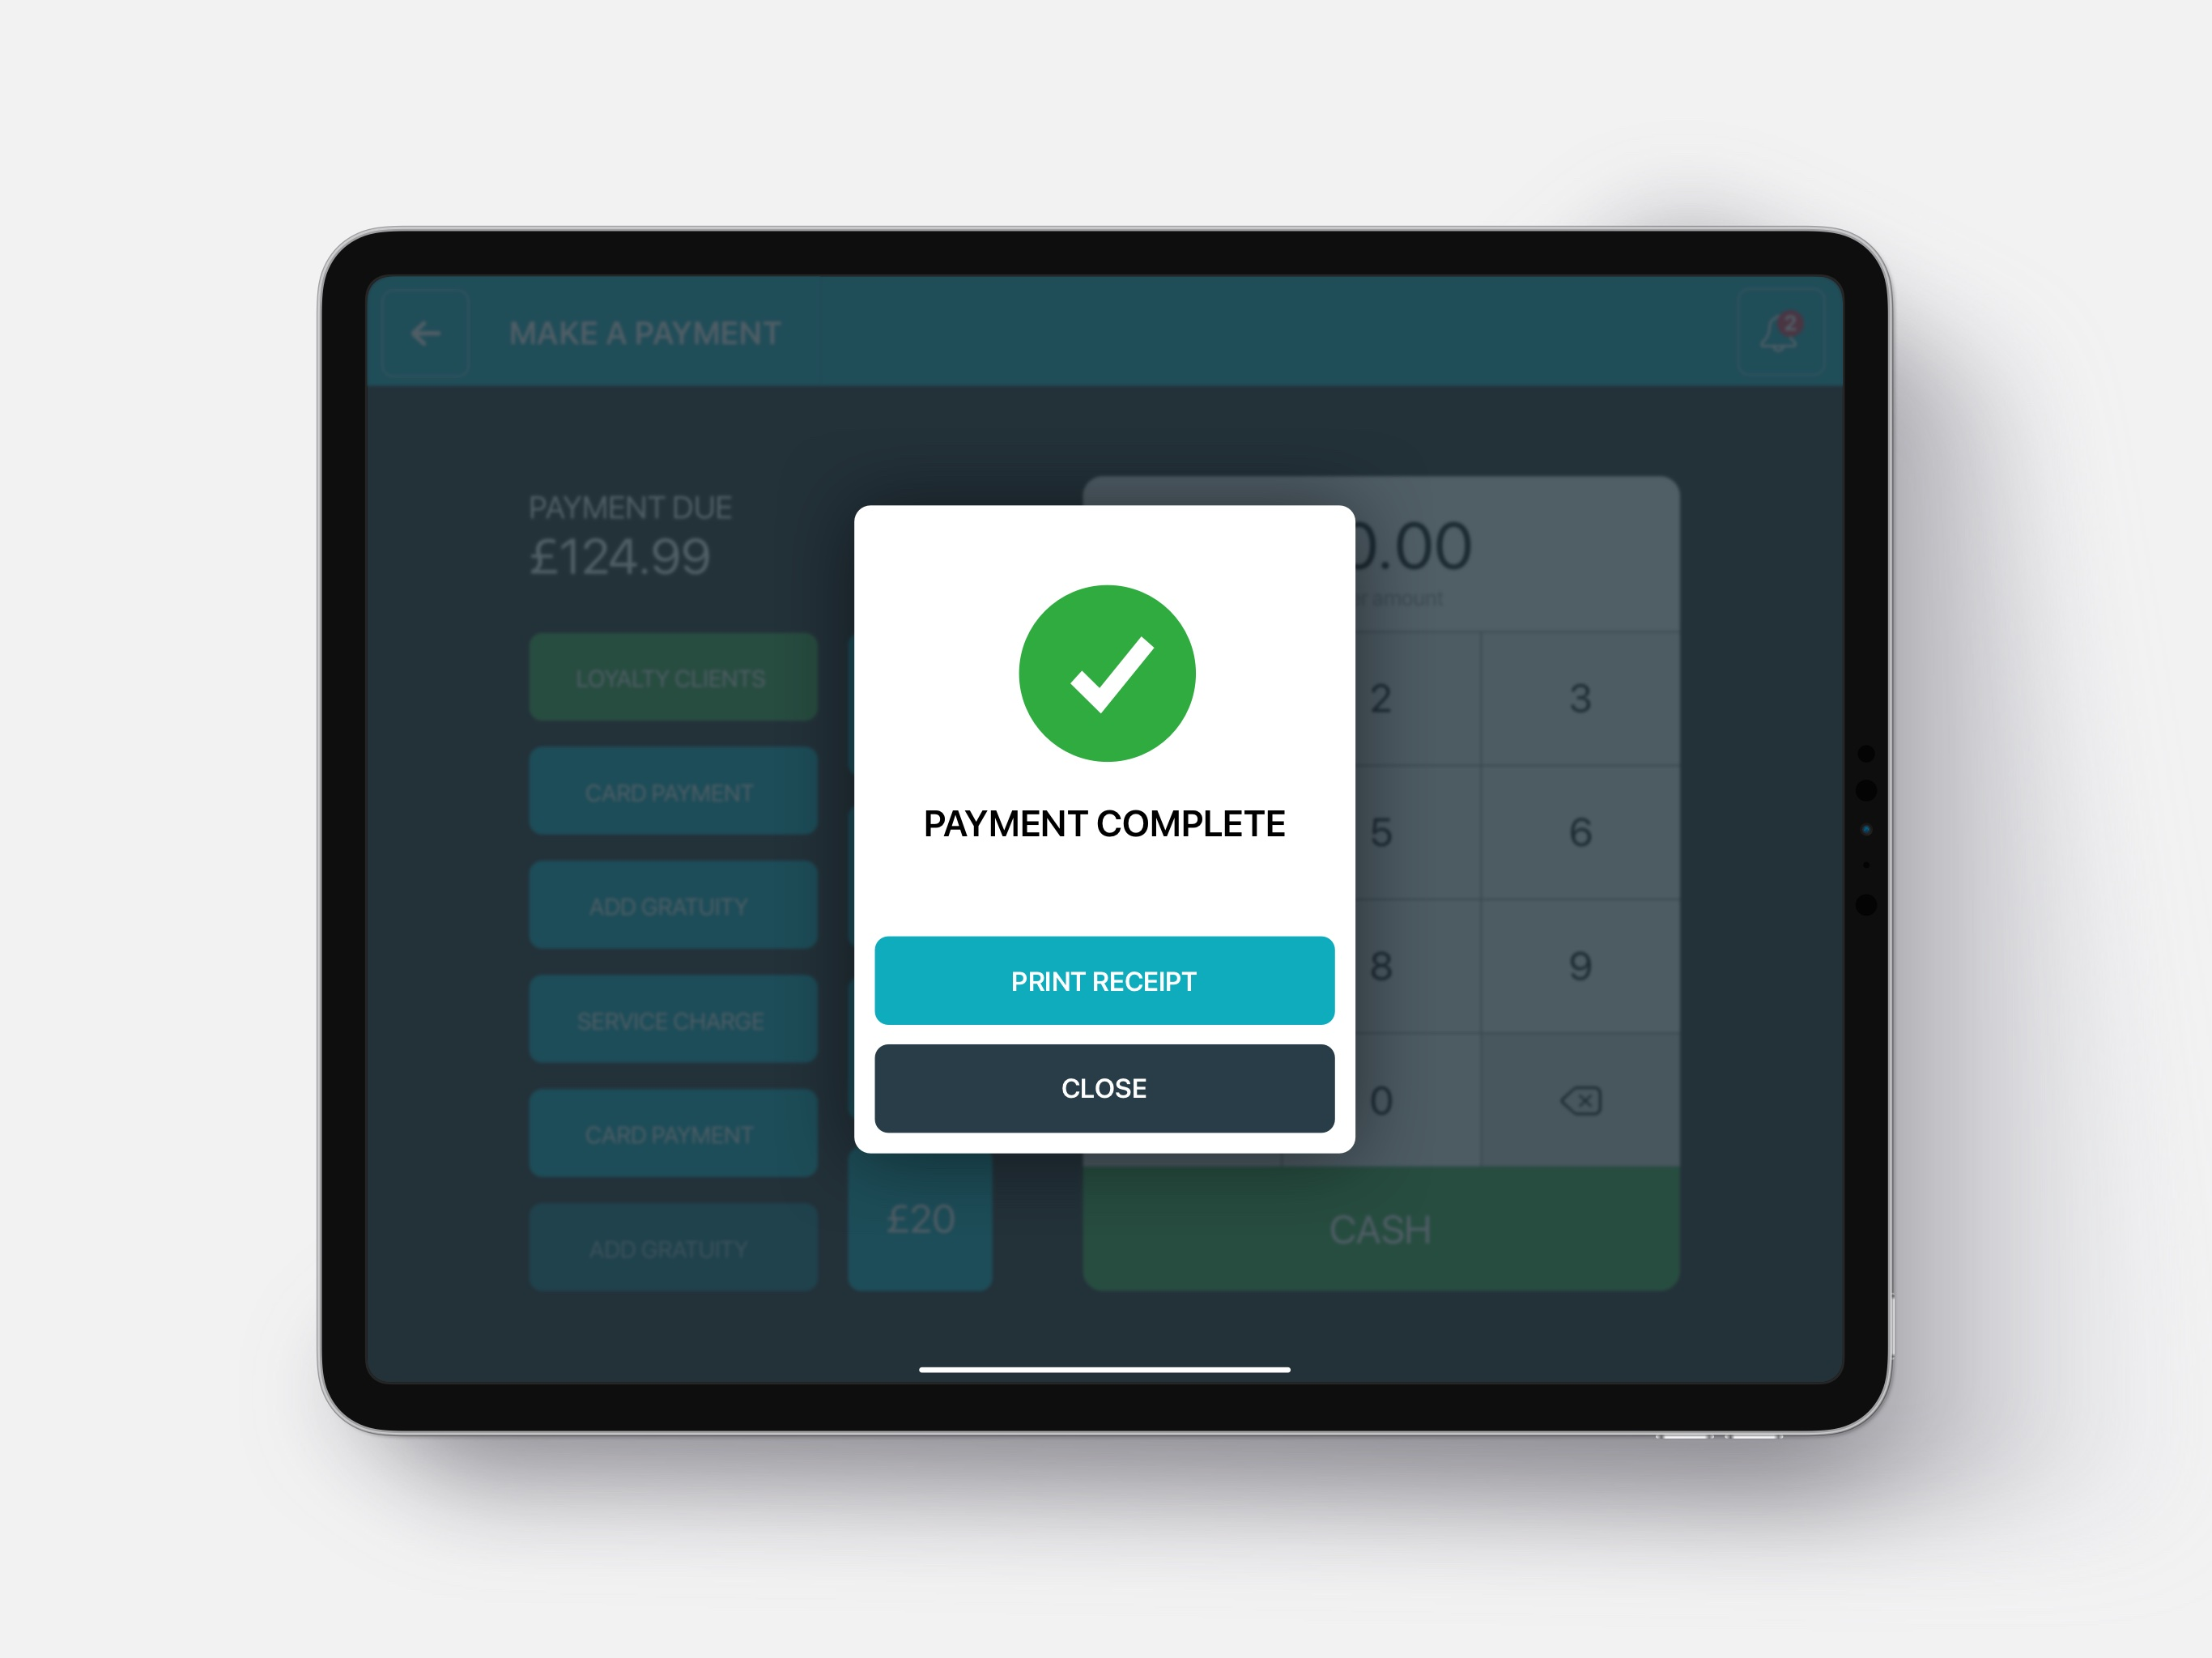 Payment complete screen